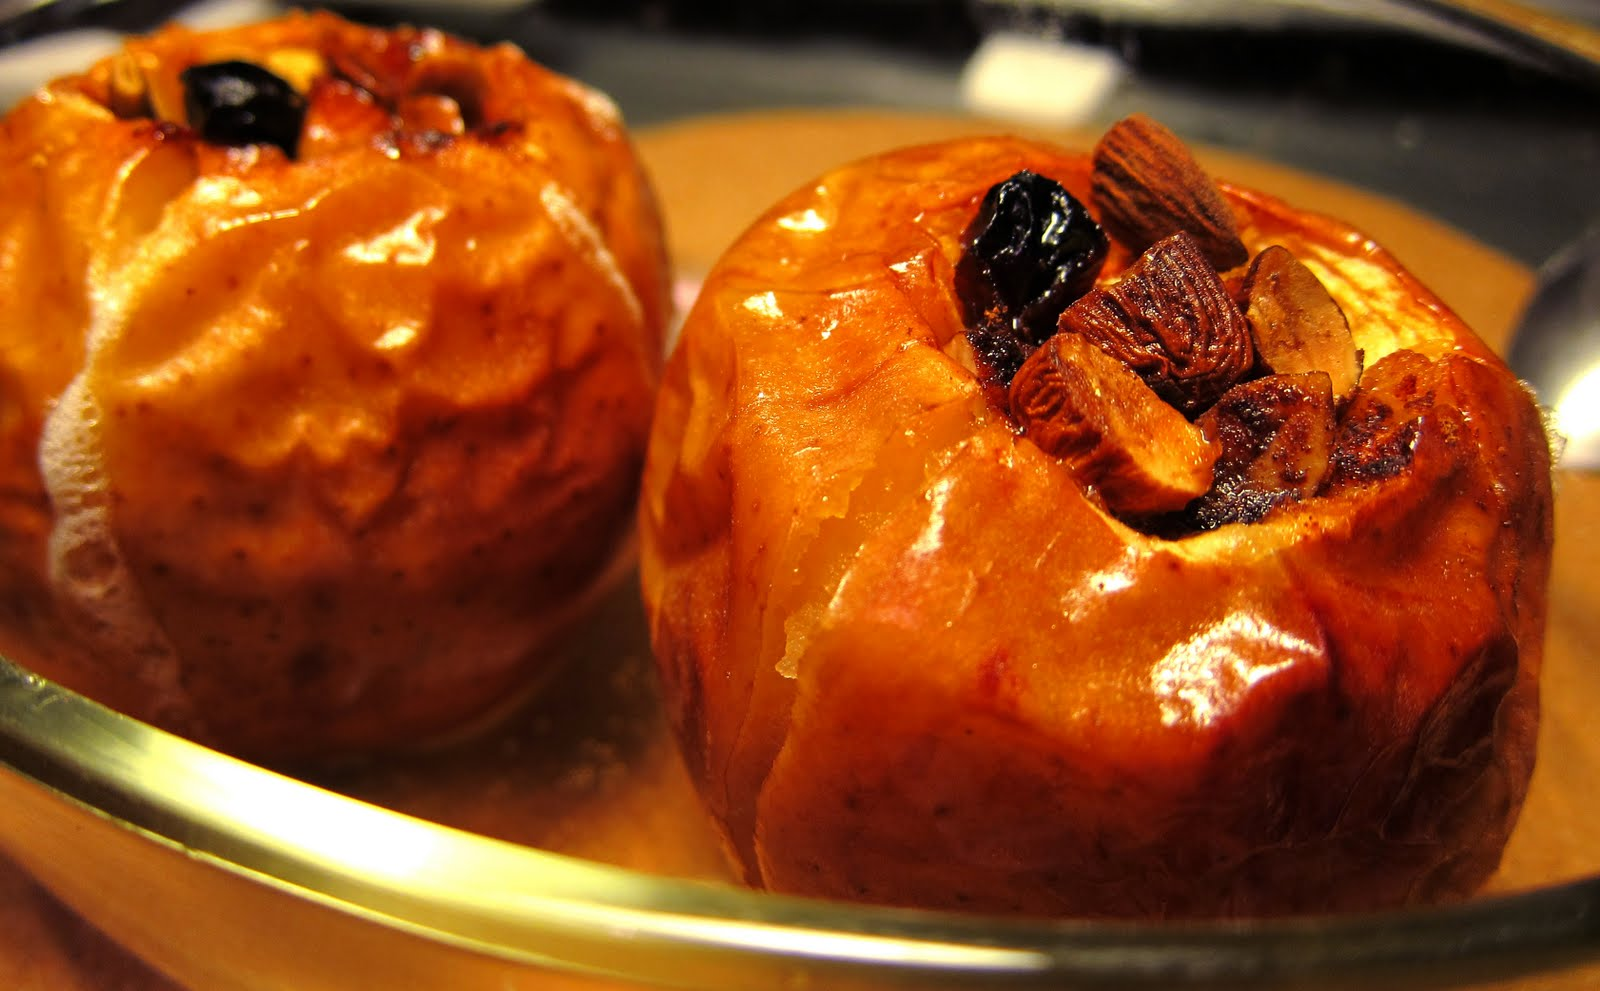 Mummy, I can cook!: Baked Apples with Cinnamon Nuts and Raisins